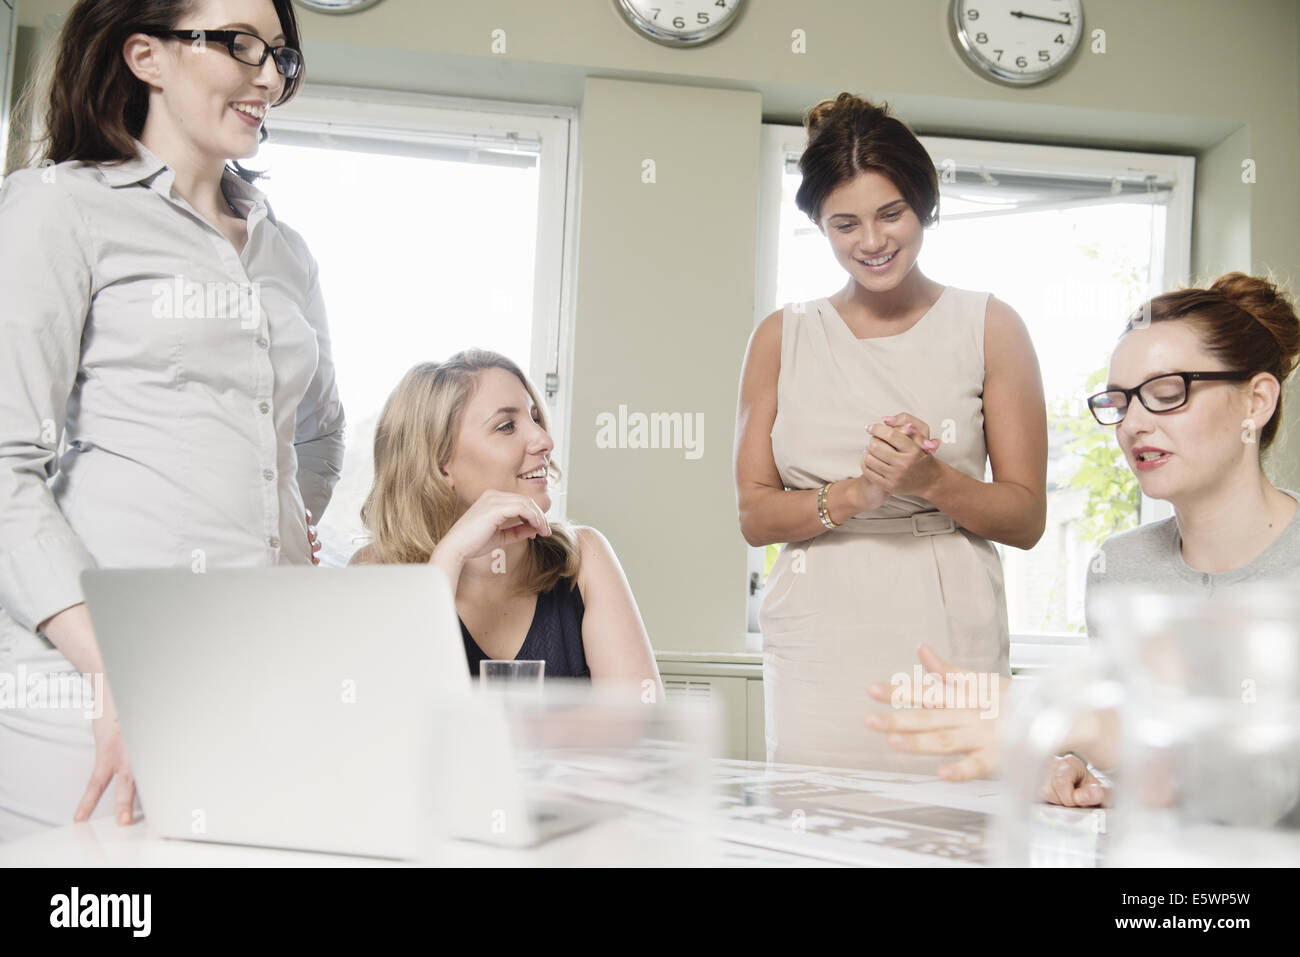 Four businesswomen at presentation meeting in conference room Stock Photo